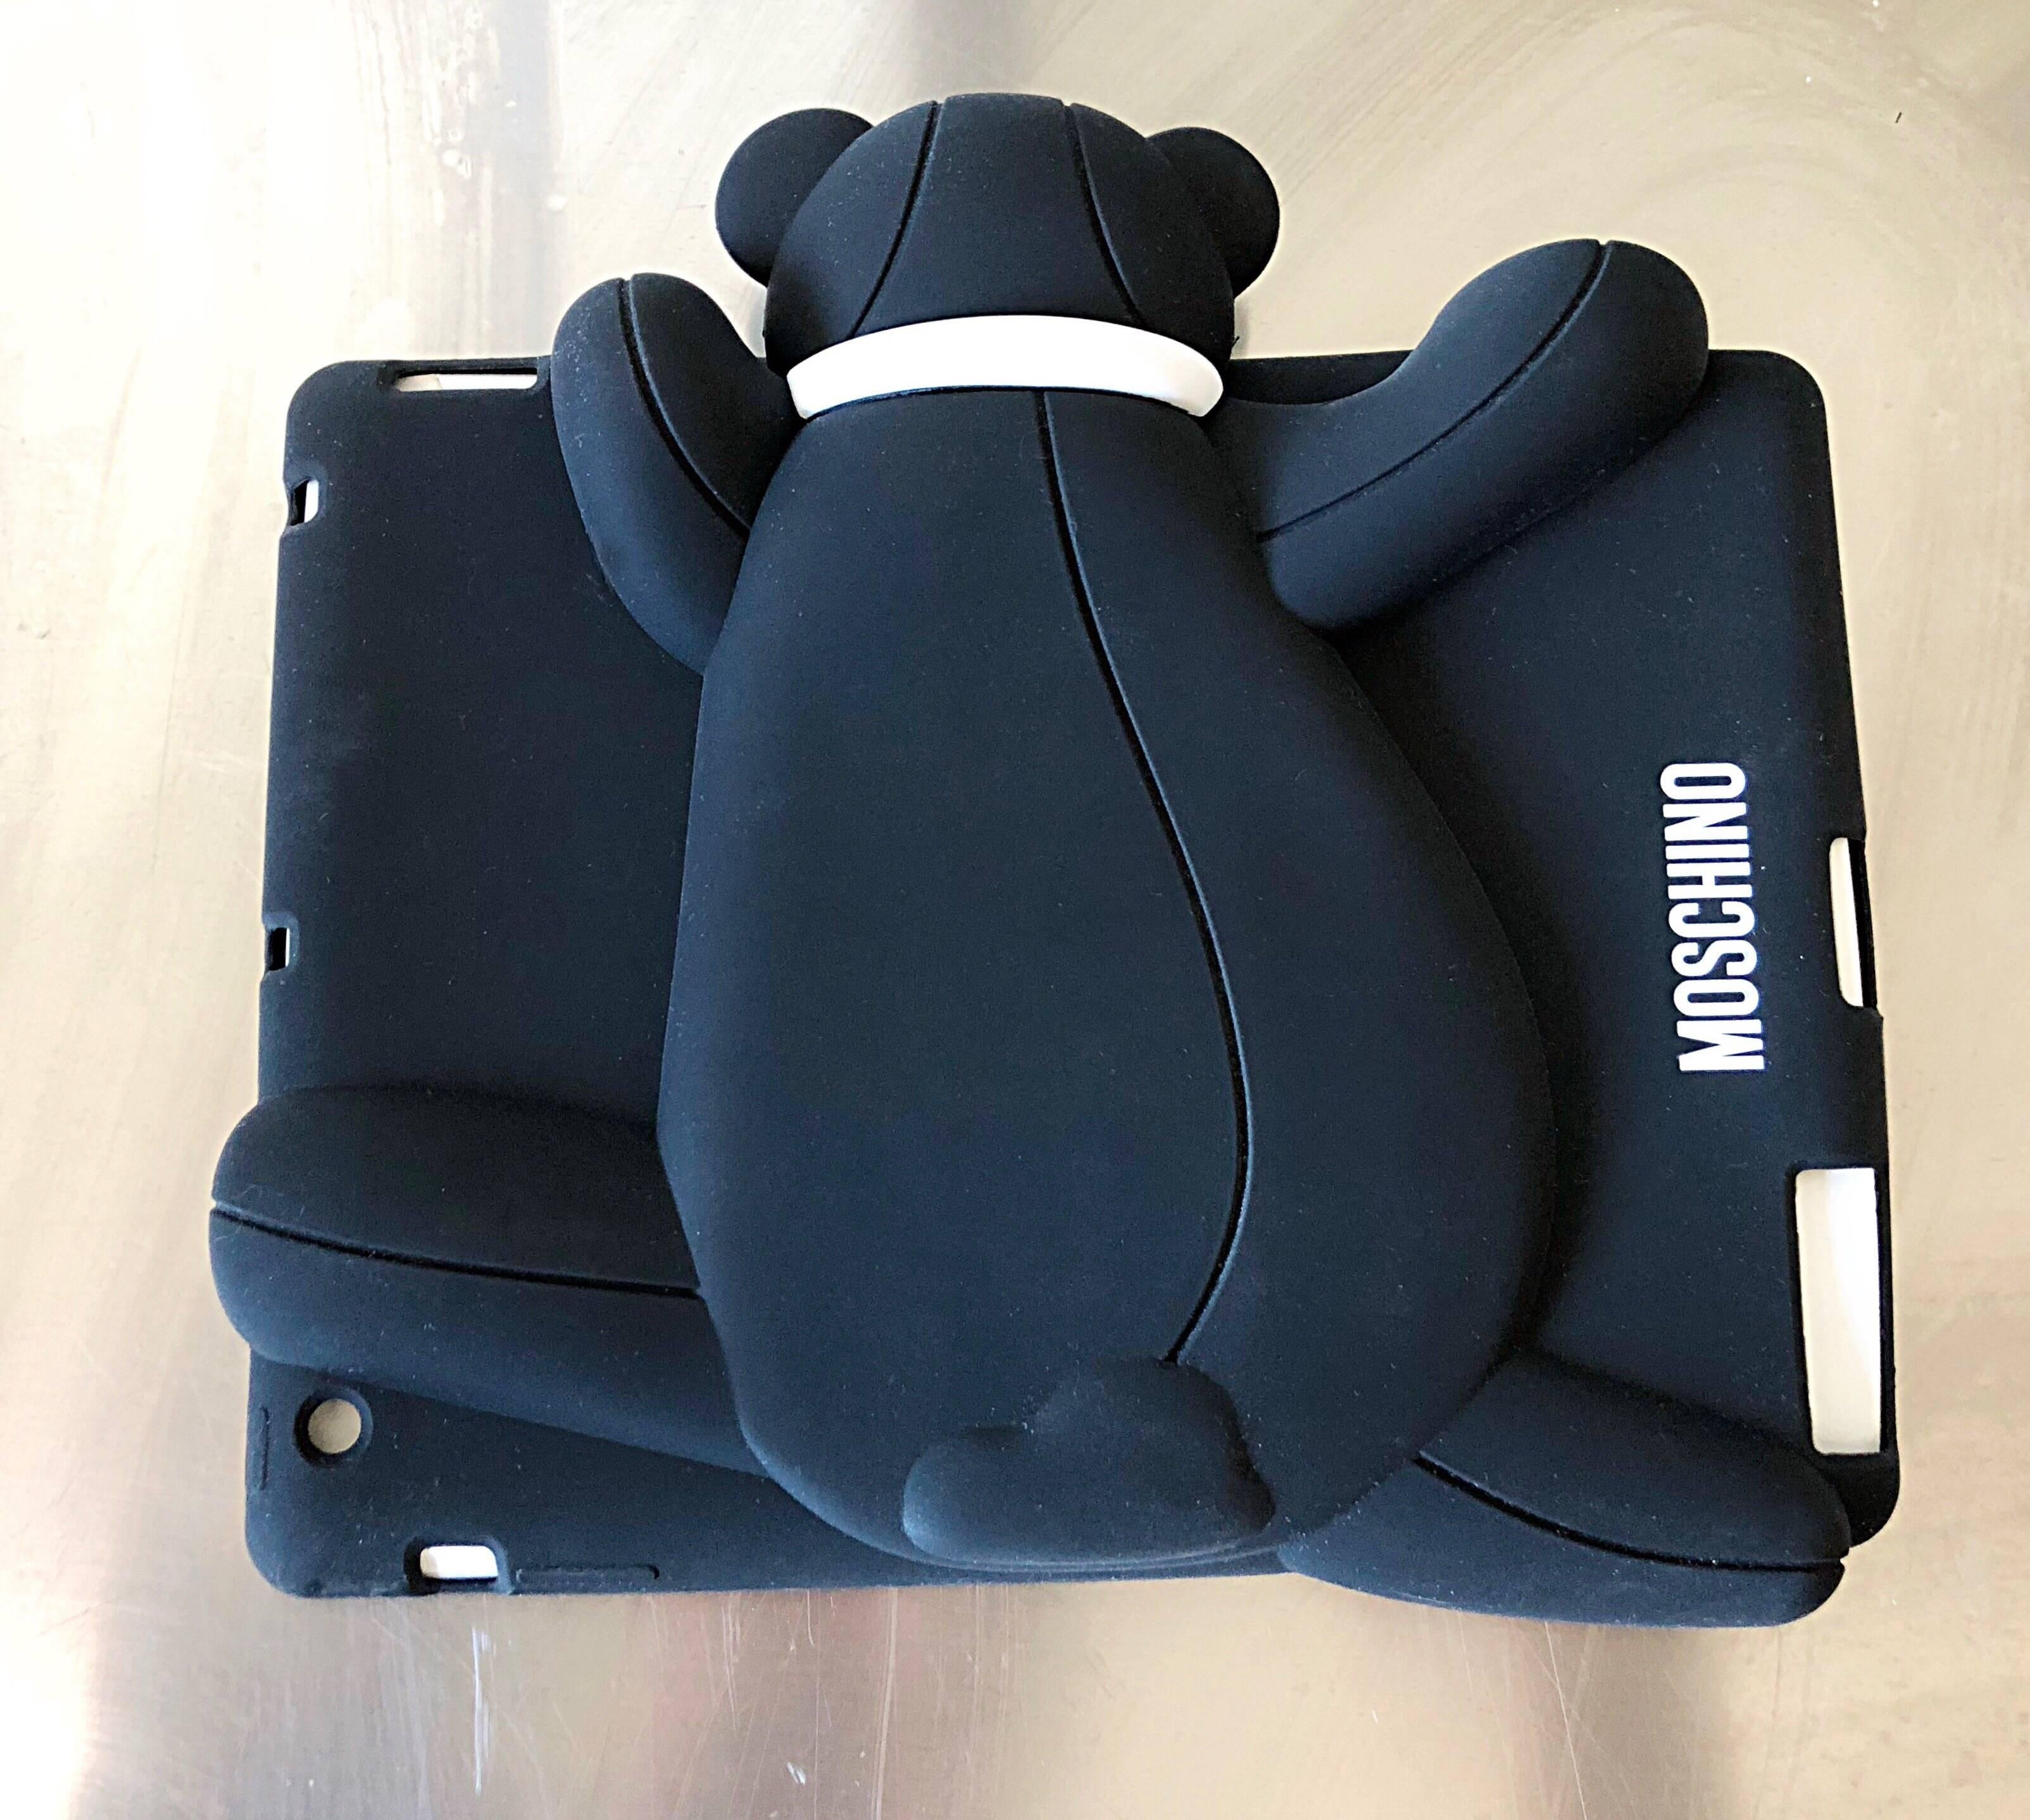 Moschino Limited Edition Moschino Sold Out Ipad 2, 3, 4 Case Panda Bear Rare Novelty